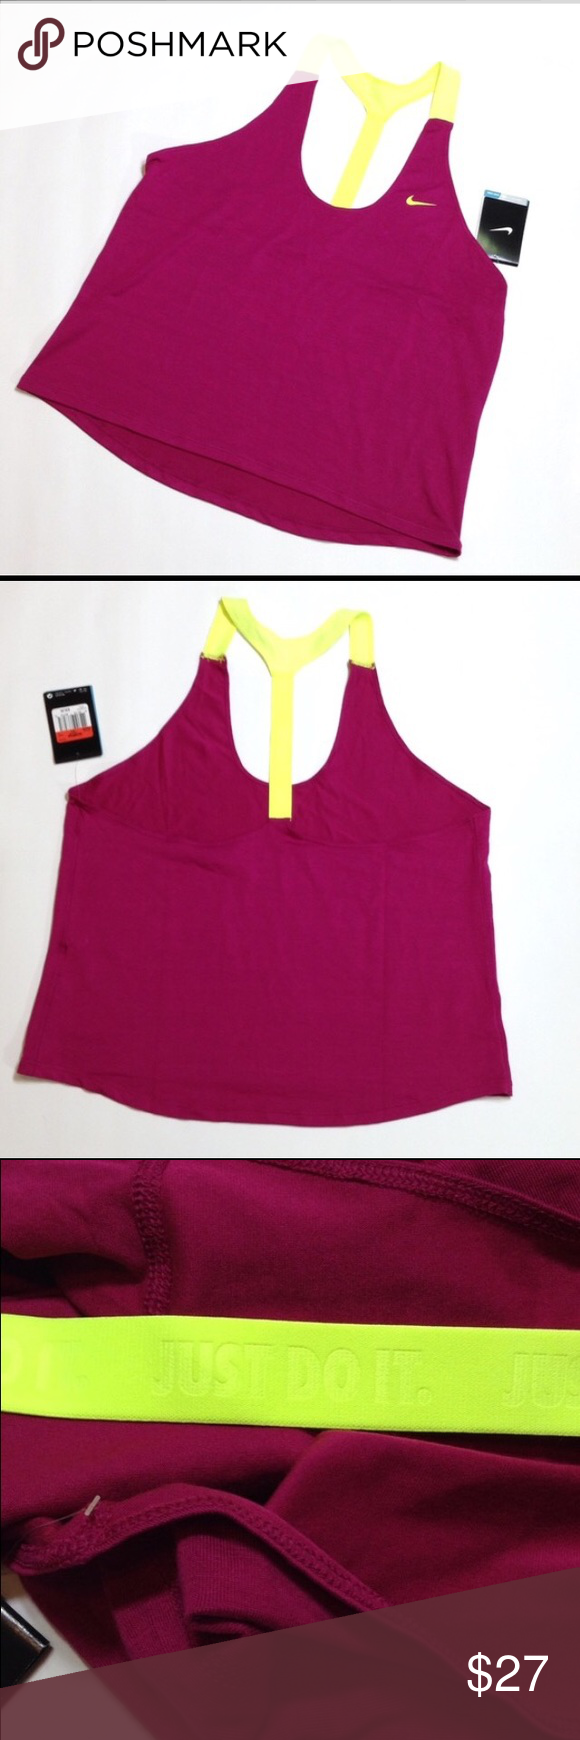 """Nike racer back dri fit tank PRICE IS FIRM UNLESS BUNDLED Magenta color, JUST DO IT logo on back strap! 👍🏻 24"""" length. Loose fitting. Nike Tops Tank Tops"""